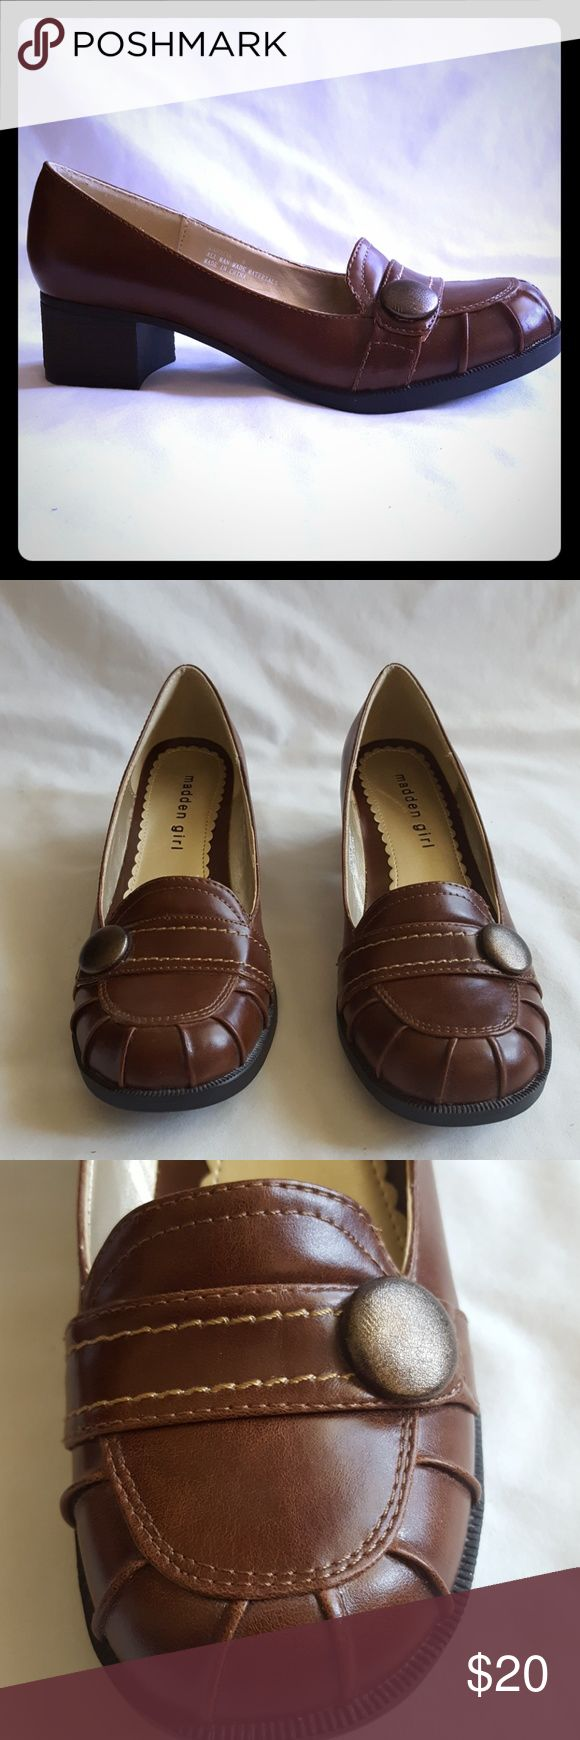 "NWOT Madden Girl Brown Heel Loafers Cute office shoes. Brown Madden Girl Loafers with about a 2 3/4"" stacked heel. Cute button and stitching detail.  Style is ""Candise"".   New - never worn. No tags or box. Smoke free and pet free home. Madden Girl Shoes Flats & Loafers"